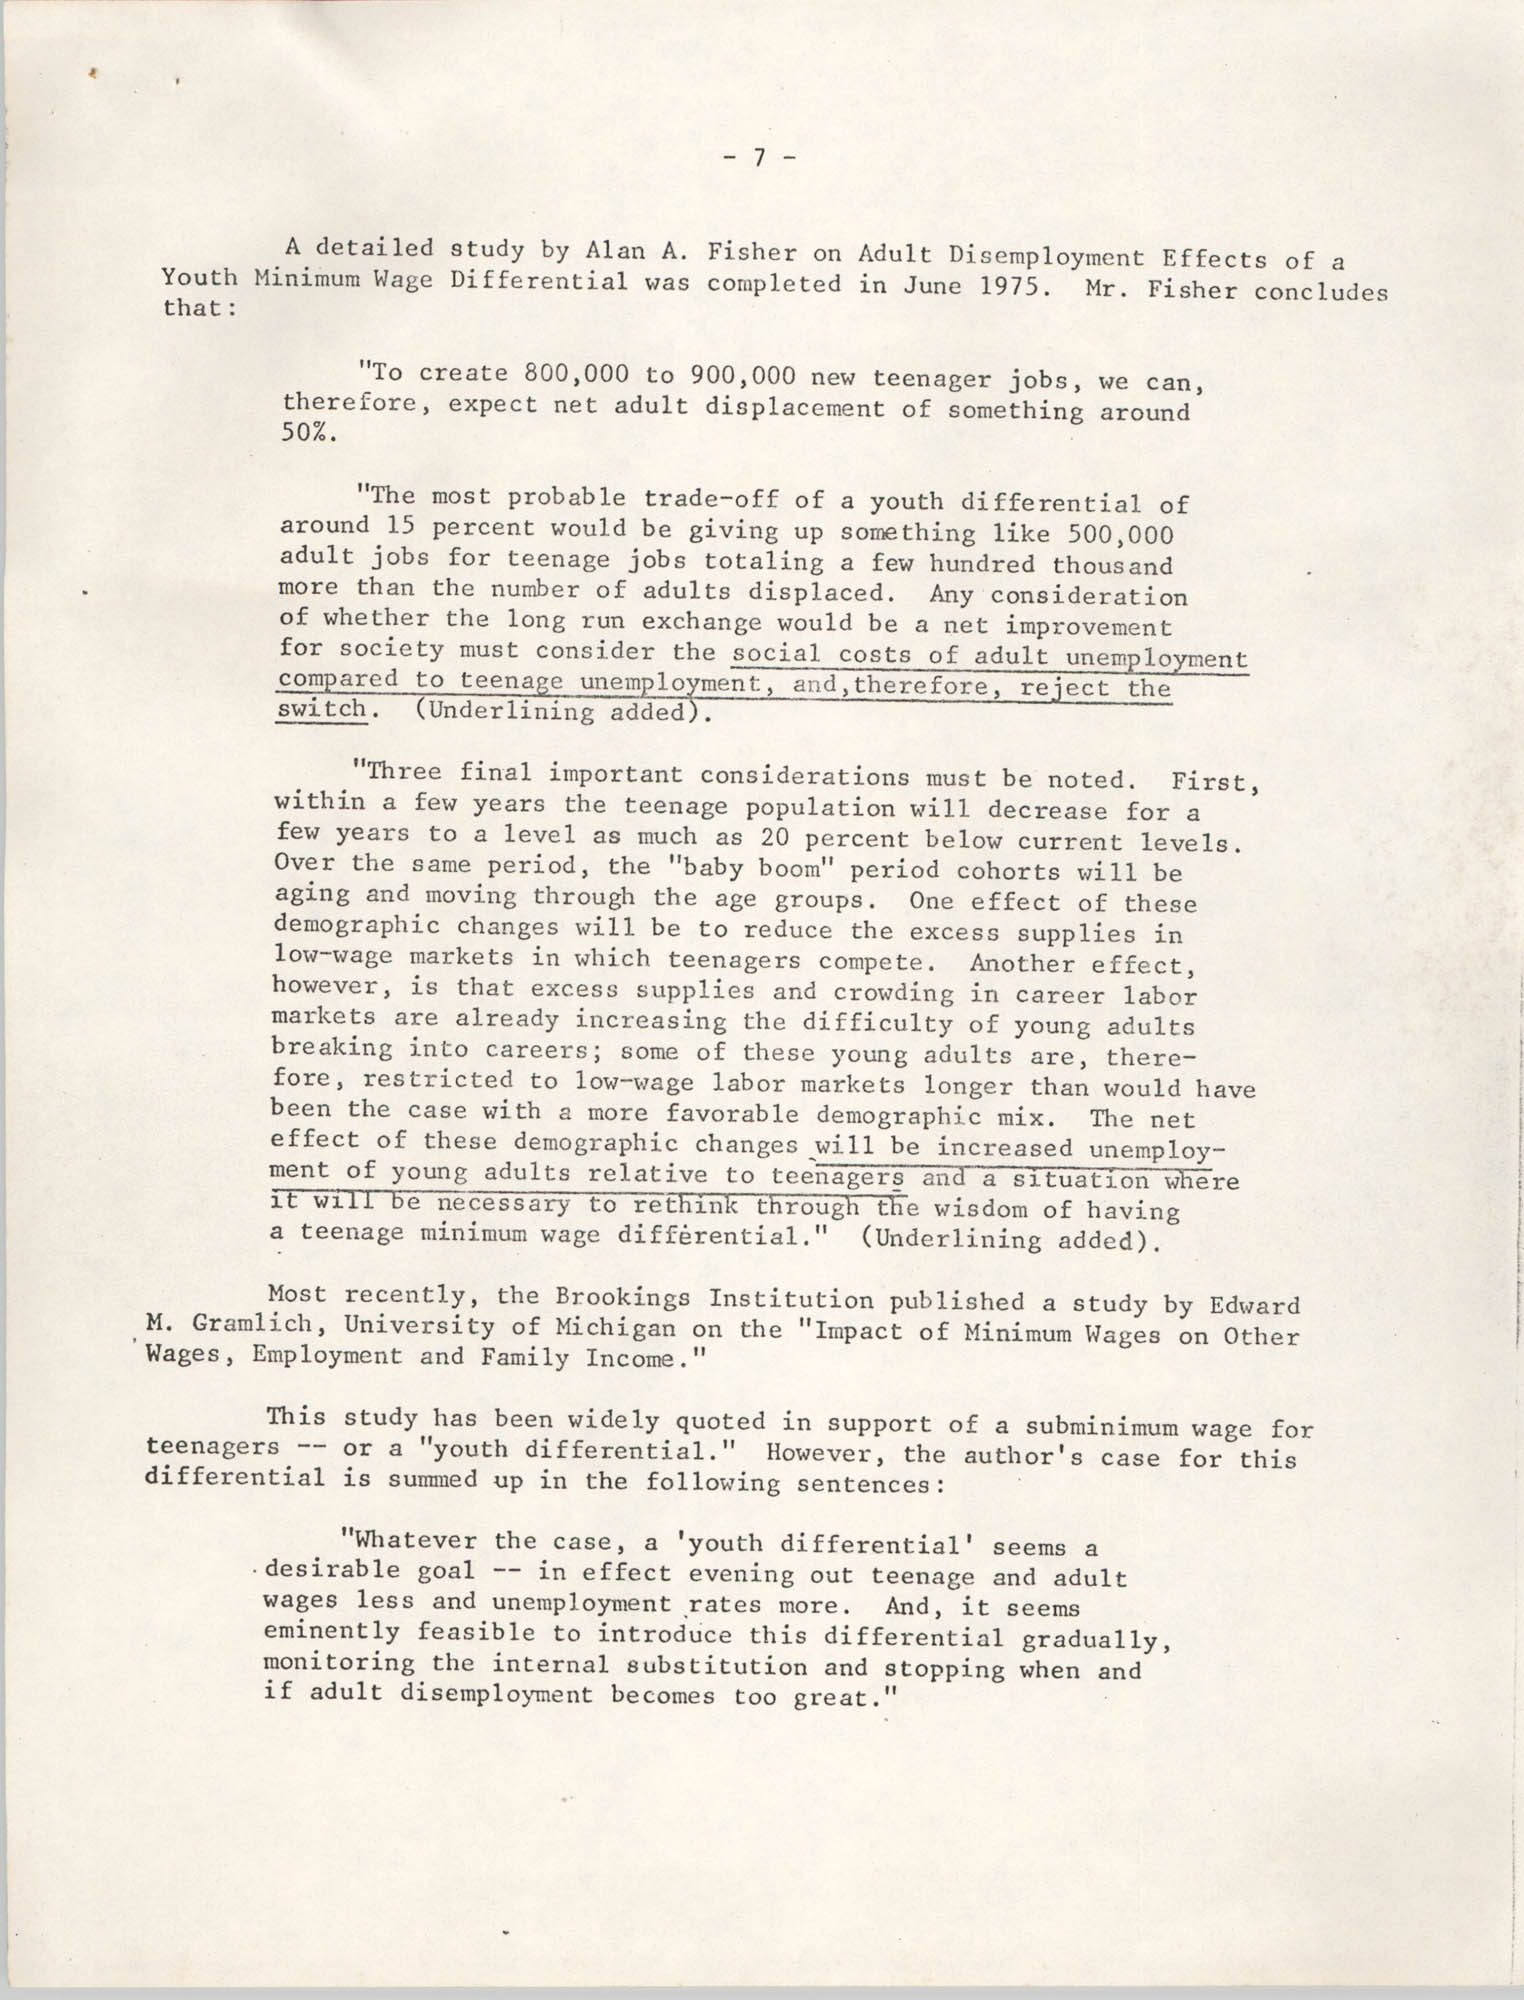 1977 Amendments to the Fair Labor Standards Act, Page 7